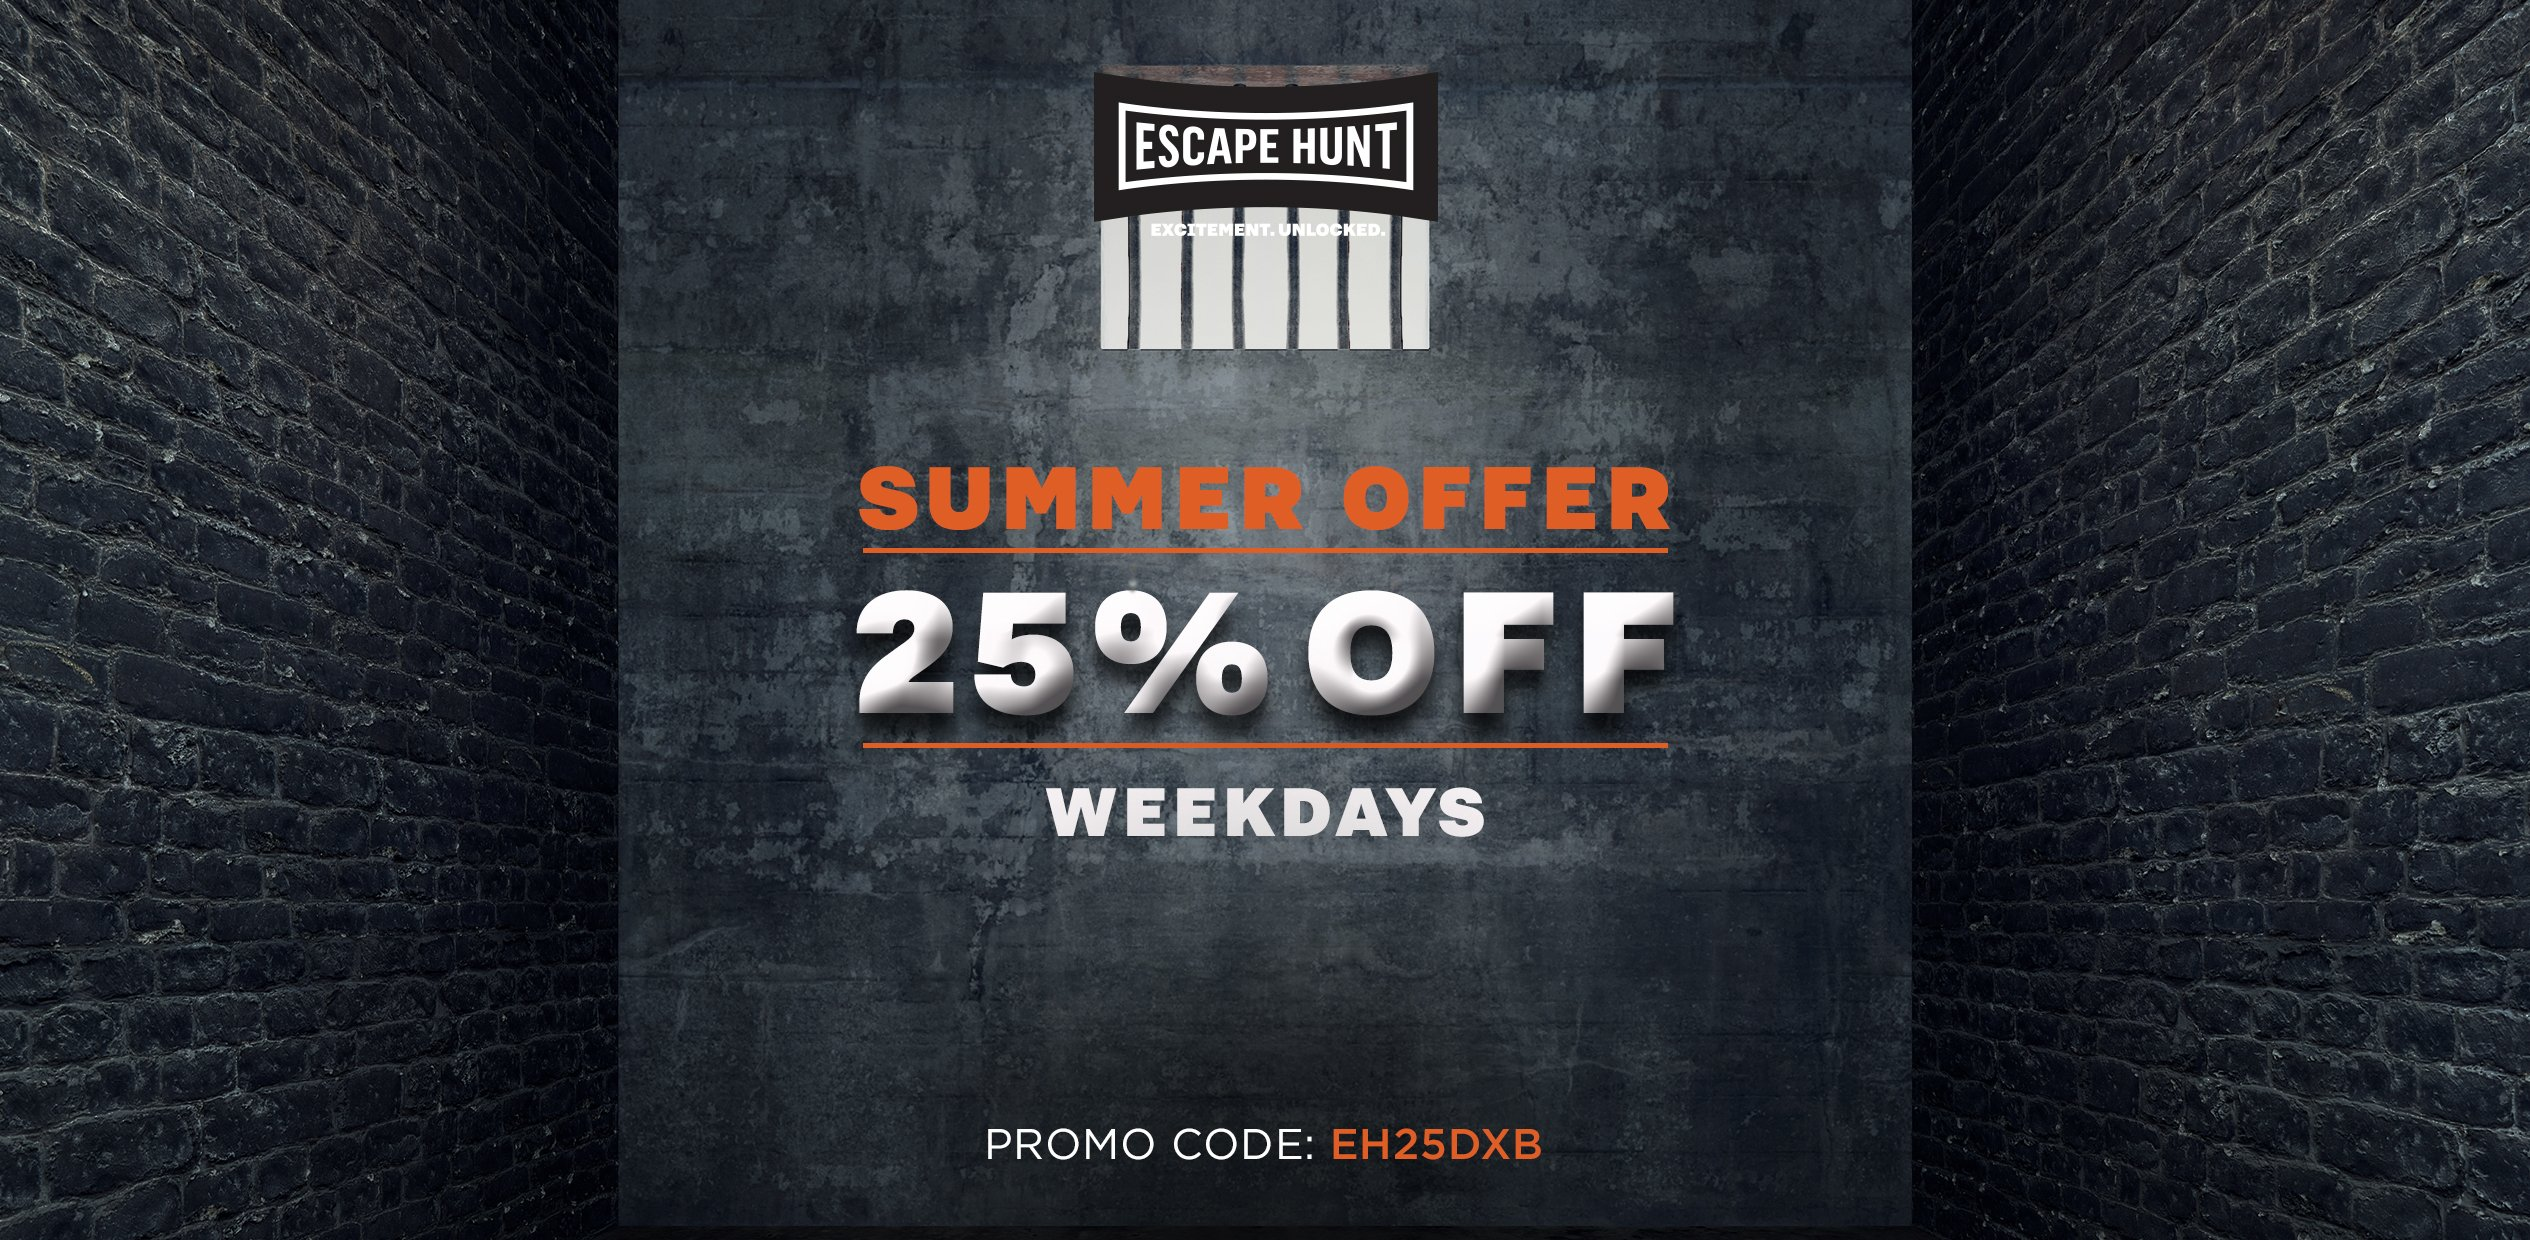 25% off this summer!